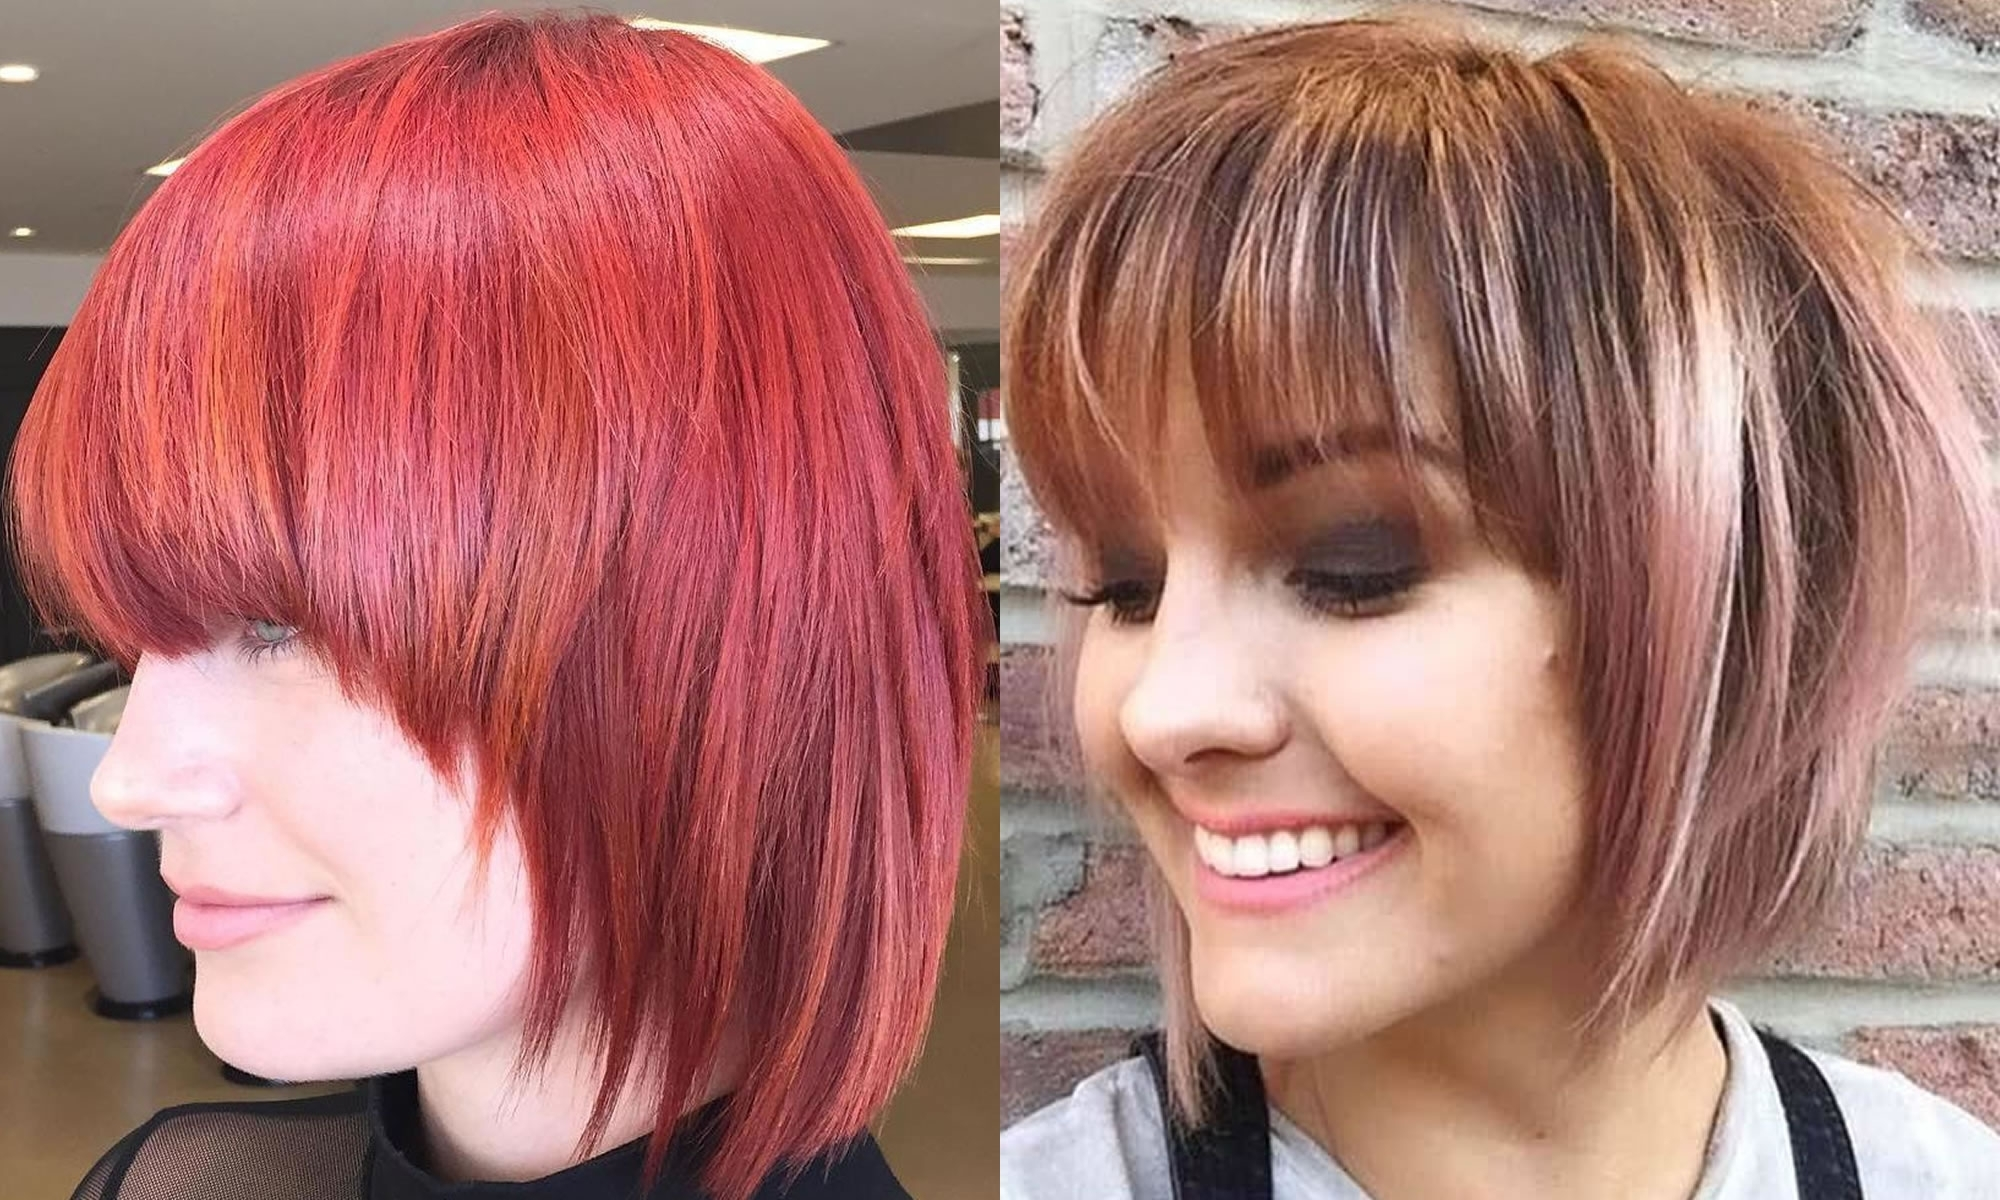 30 Ravishing Short Bob Hair Cuts With Bangs & New Hair Colors With Regard To Well Known Ravishing Red Pixie Hairstyles (View 7 of 20)